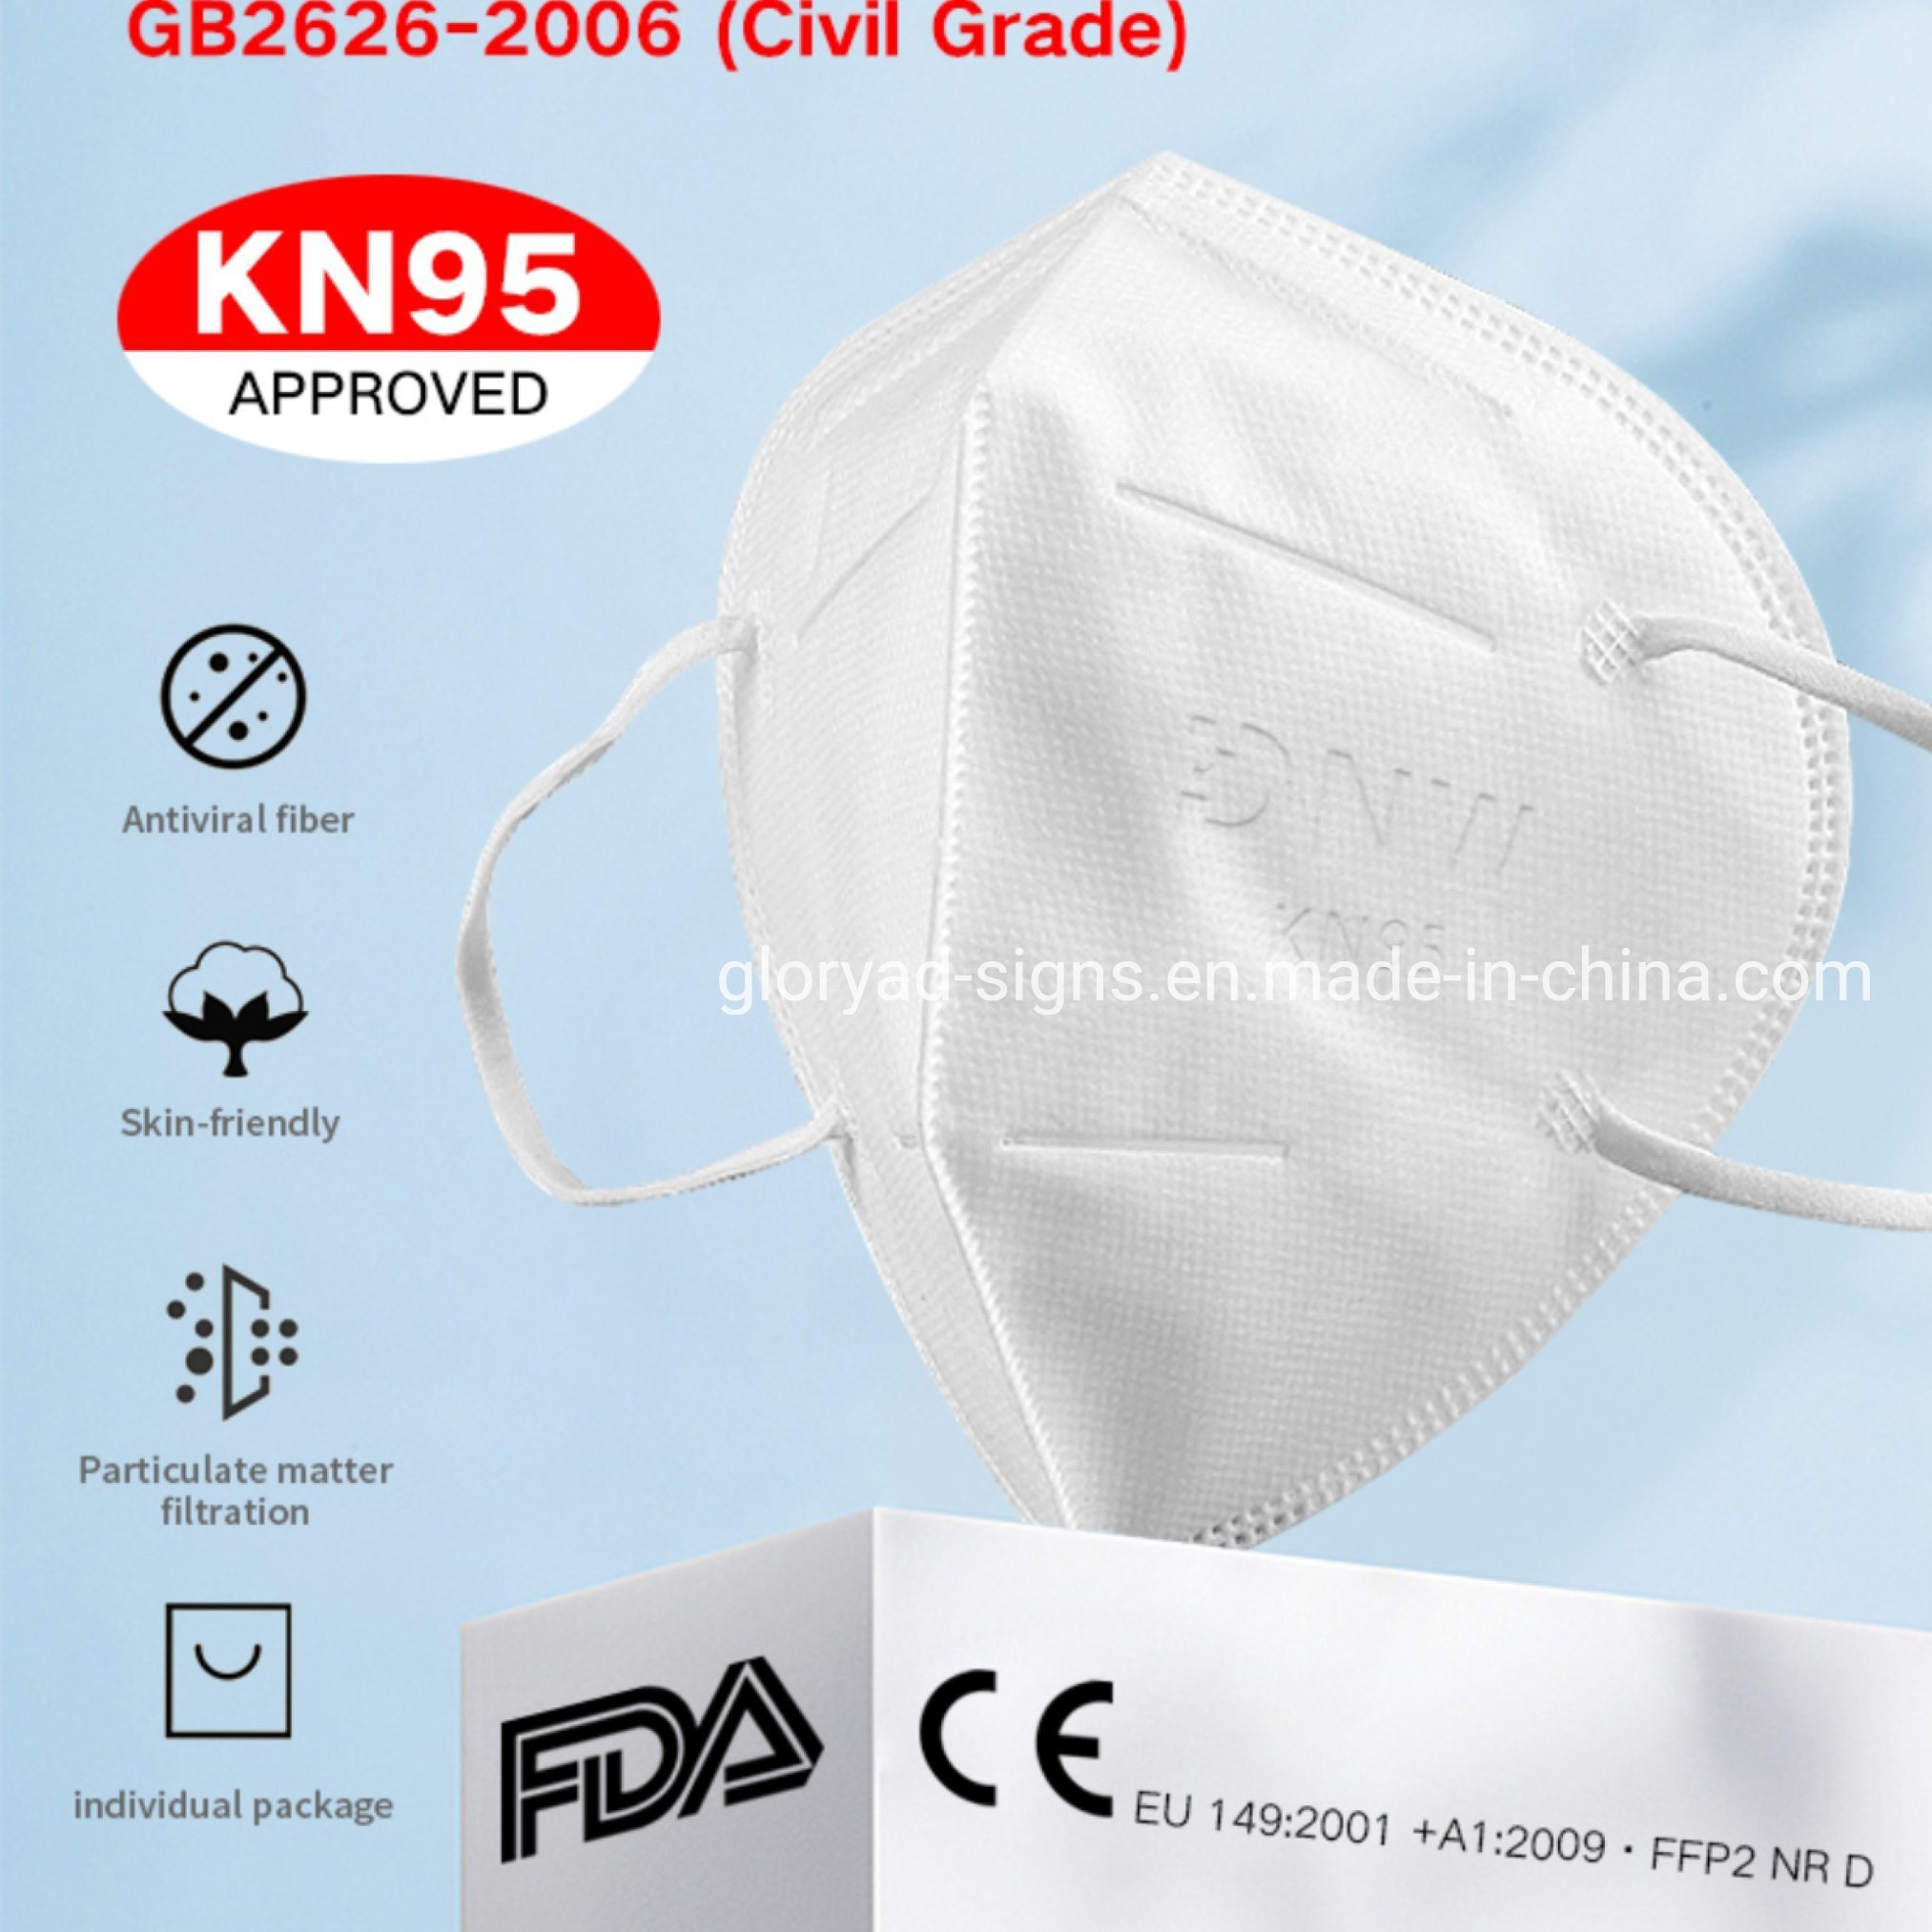 [Hot Item] Kn95 FDA and Ce Disposable Face Mask in Stock for Preventing ,[Hot Item] Kn95 FDA and Ce Disposable Face Mask in Stock for Preventing